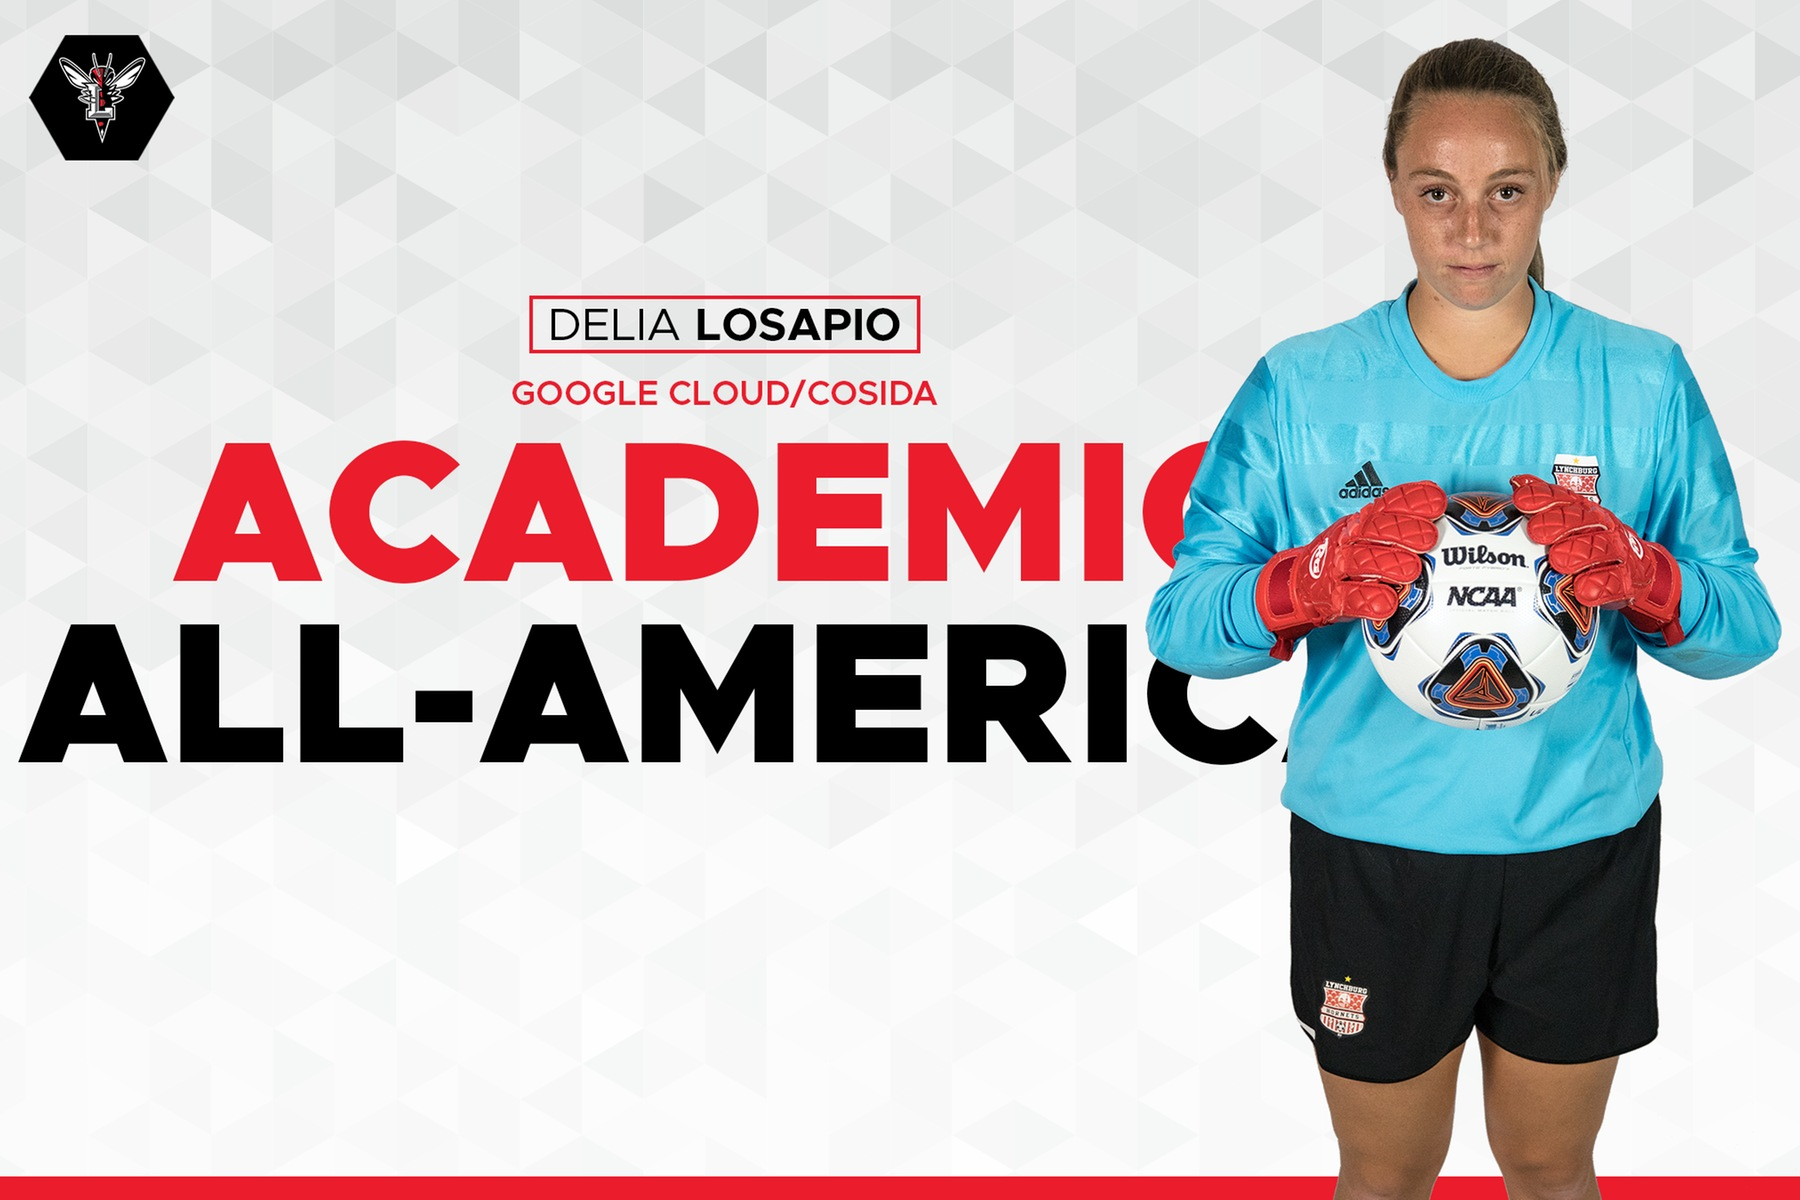 Image of Delia LoSapio holding a soccer ball. Text: Google Could/CoSIDA Academic All-America on White background.